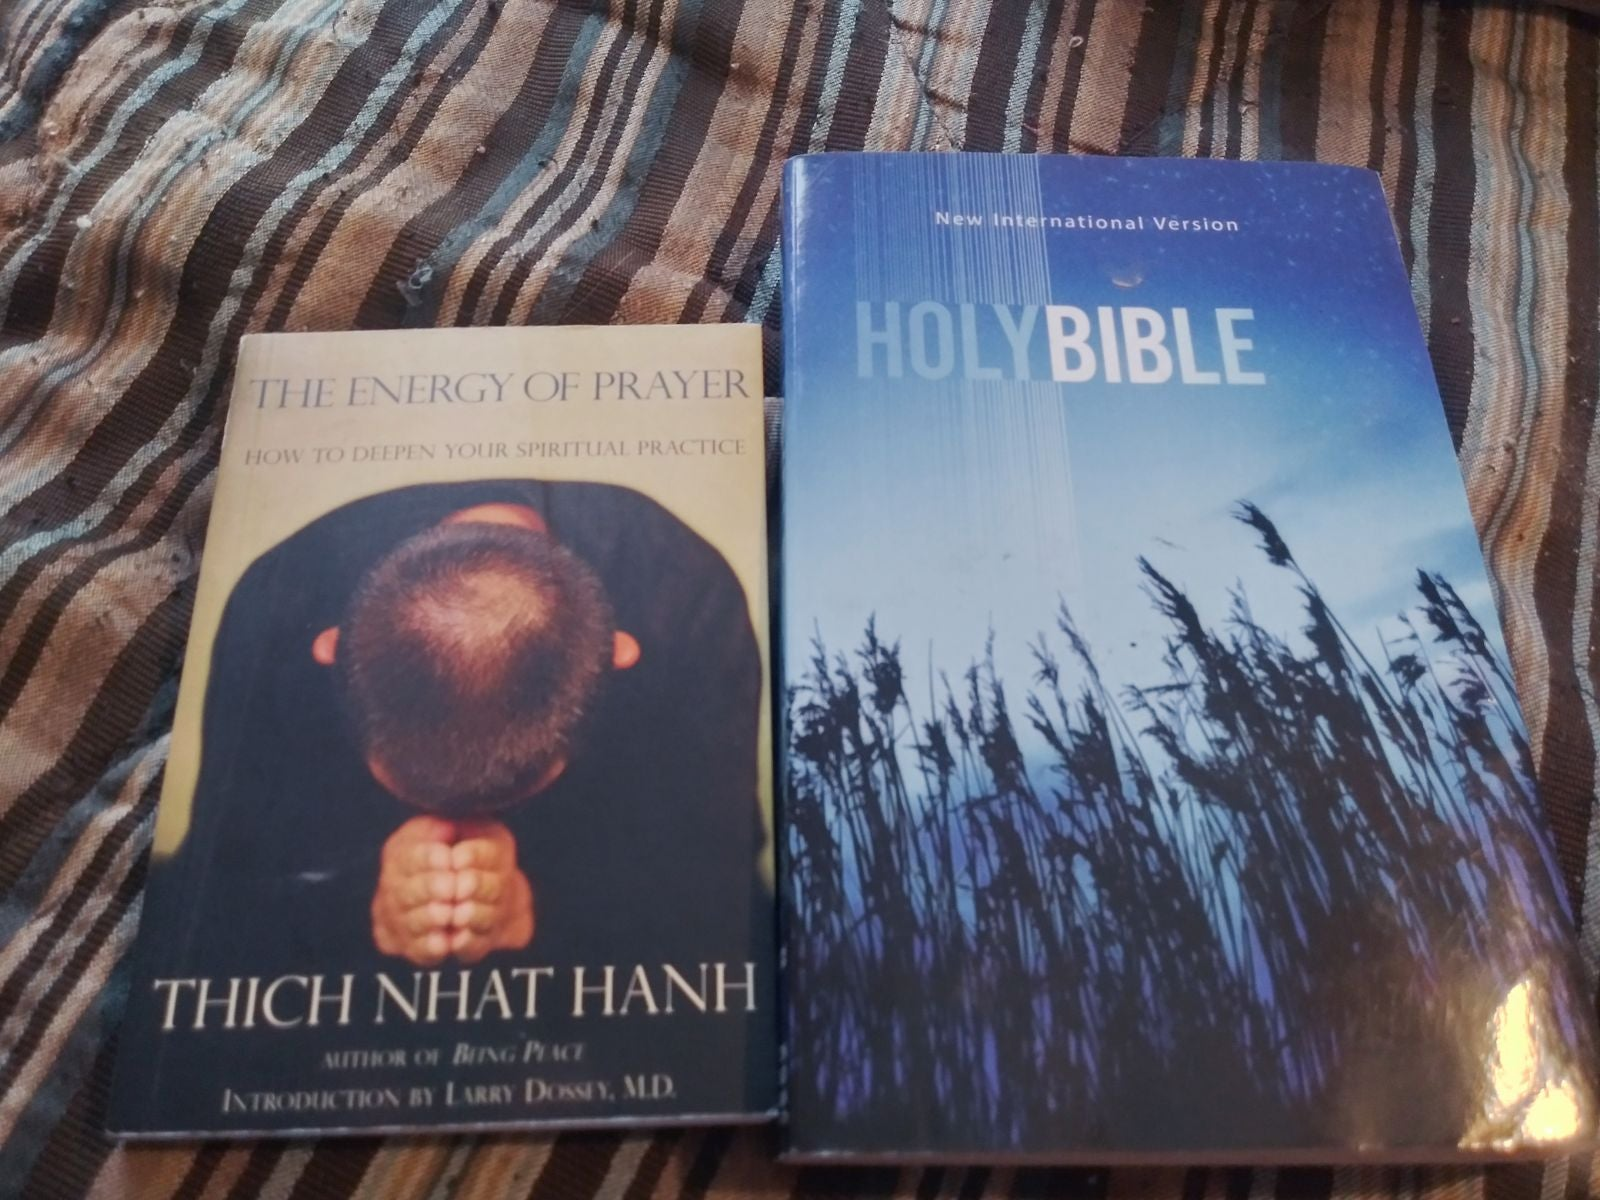 The power of prayer/the holy bible